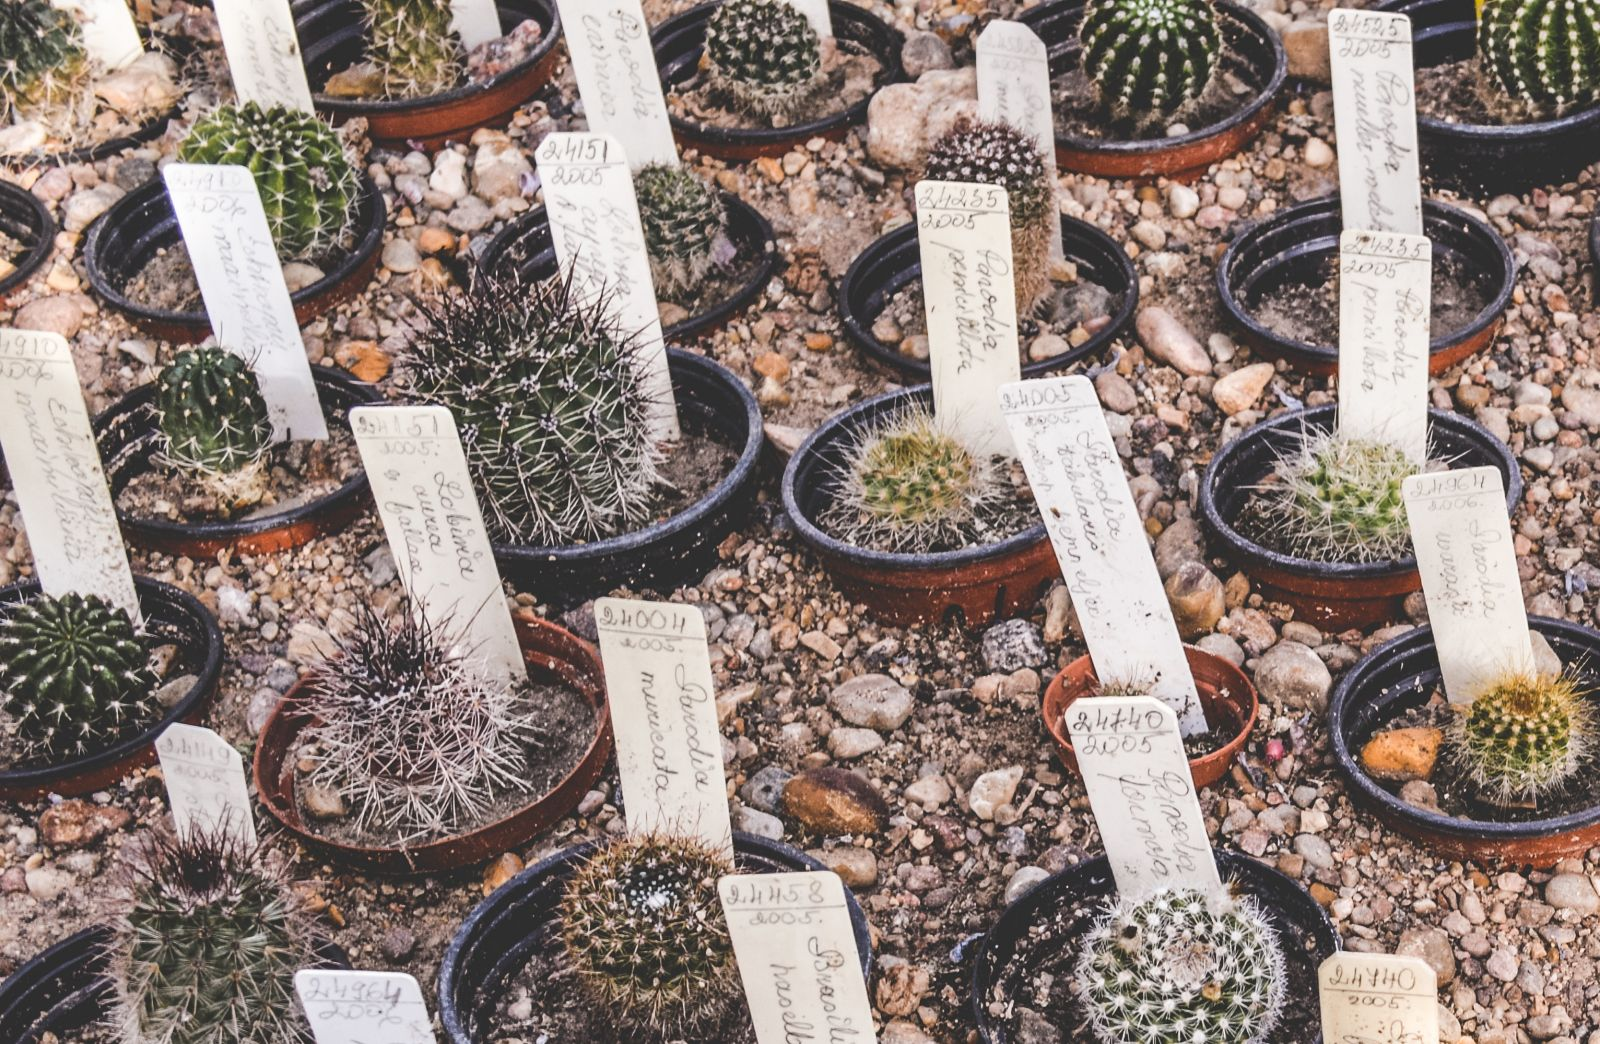 Cactus with cards